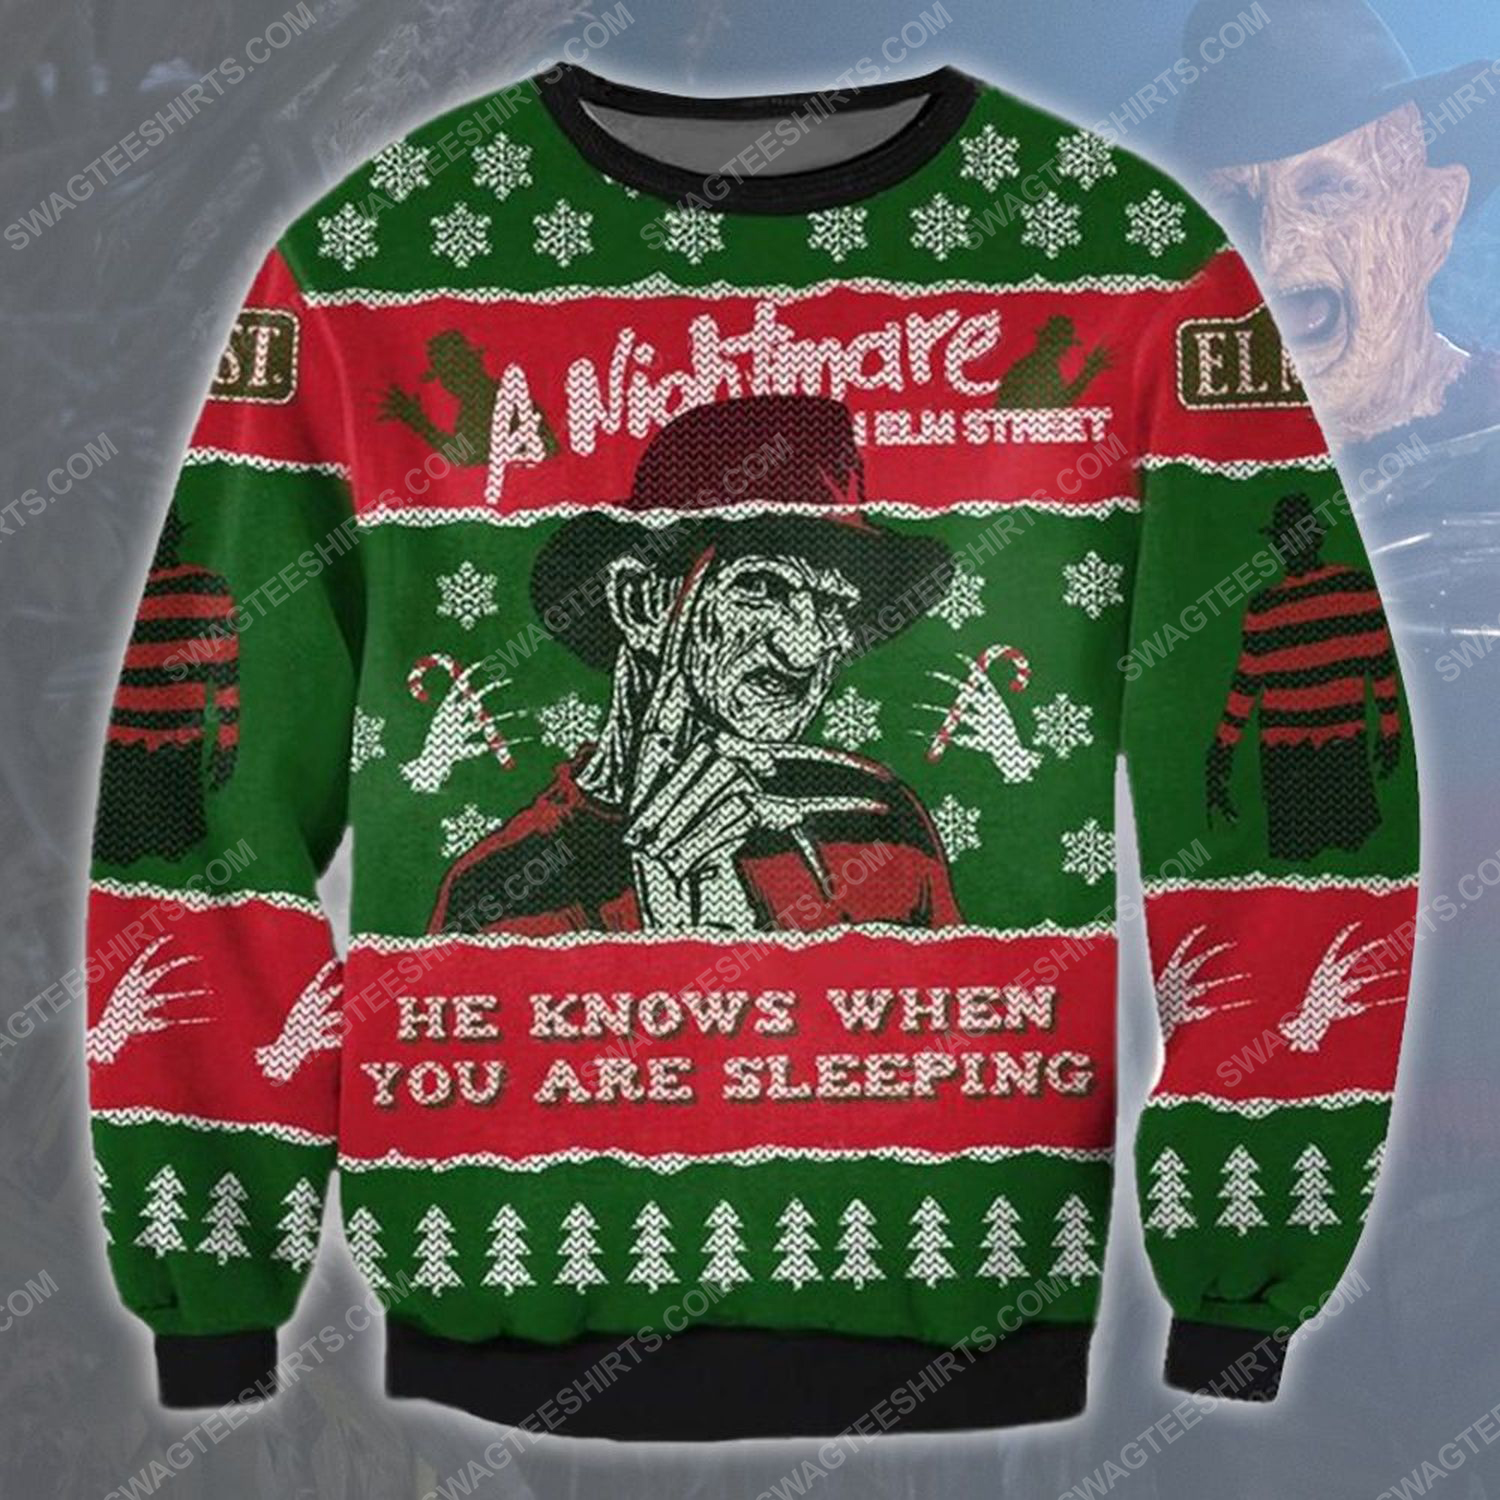 A nightmare on elm street he know when you are sleeping ugly christmas sweater - Copy (3)